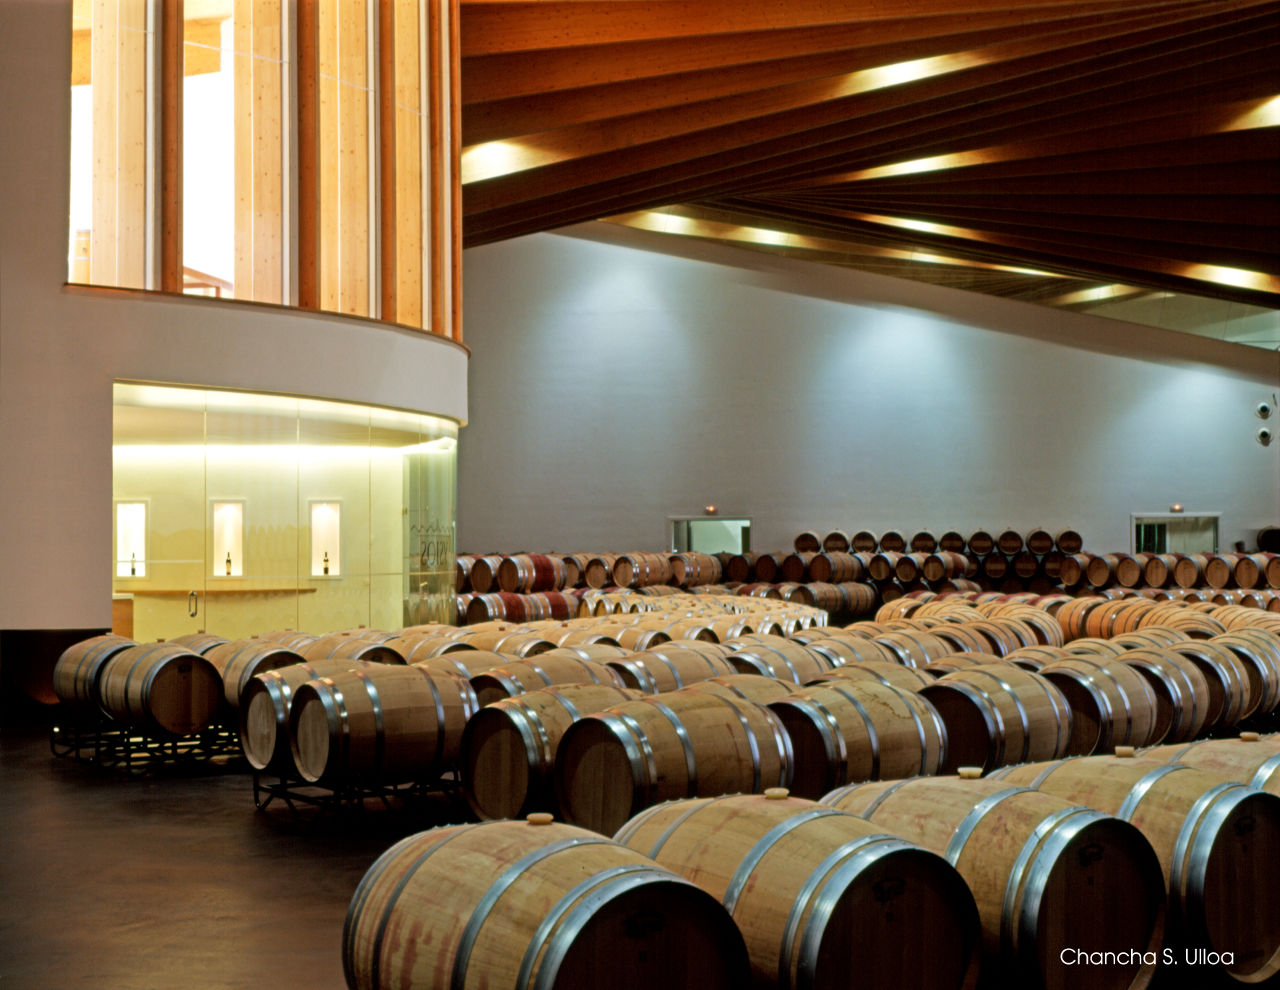 Ysios Winery in La Rioja4 - Contemporary Architecture: Ysios Winery in the Rioja Alavesa, Spain